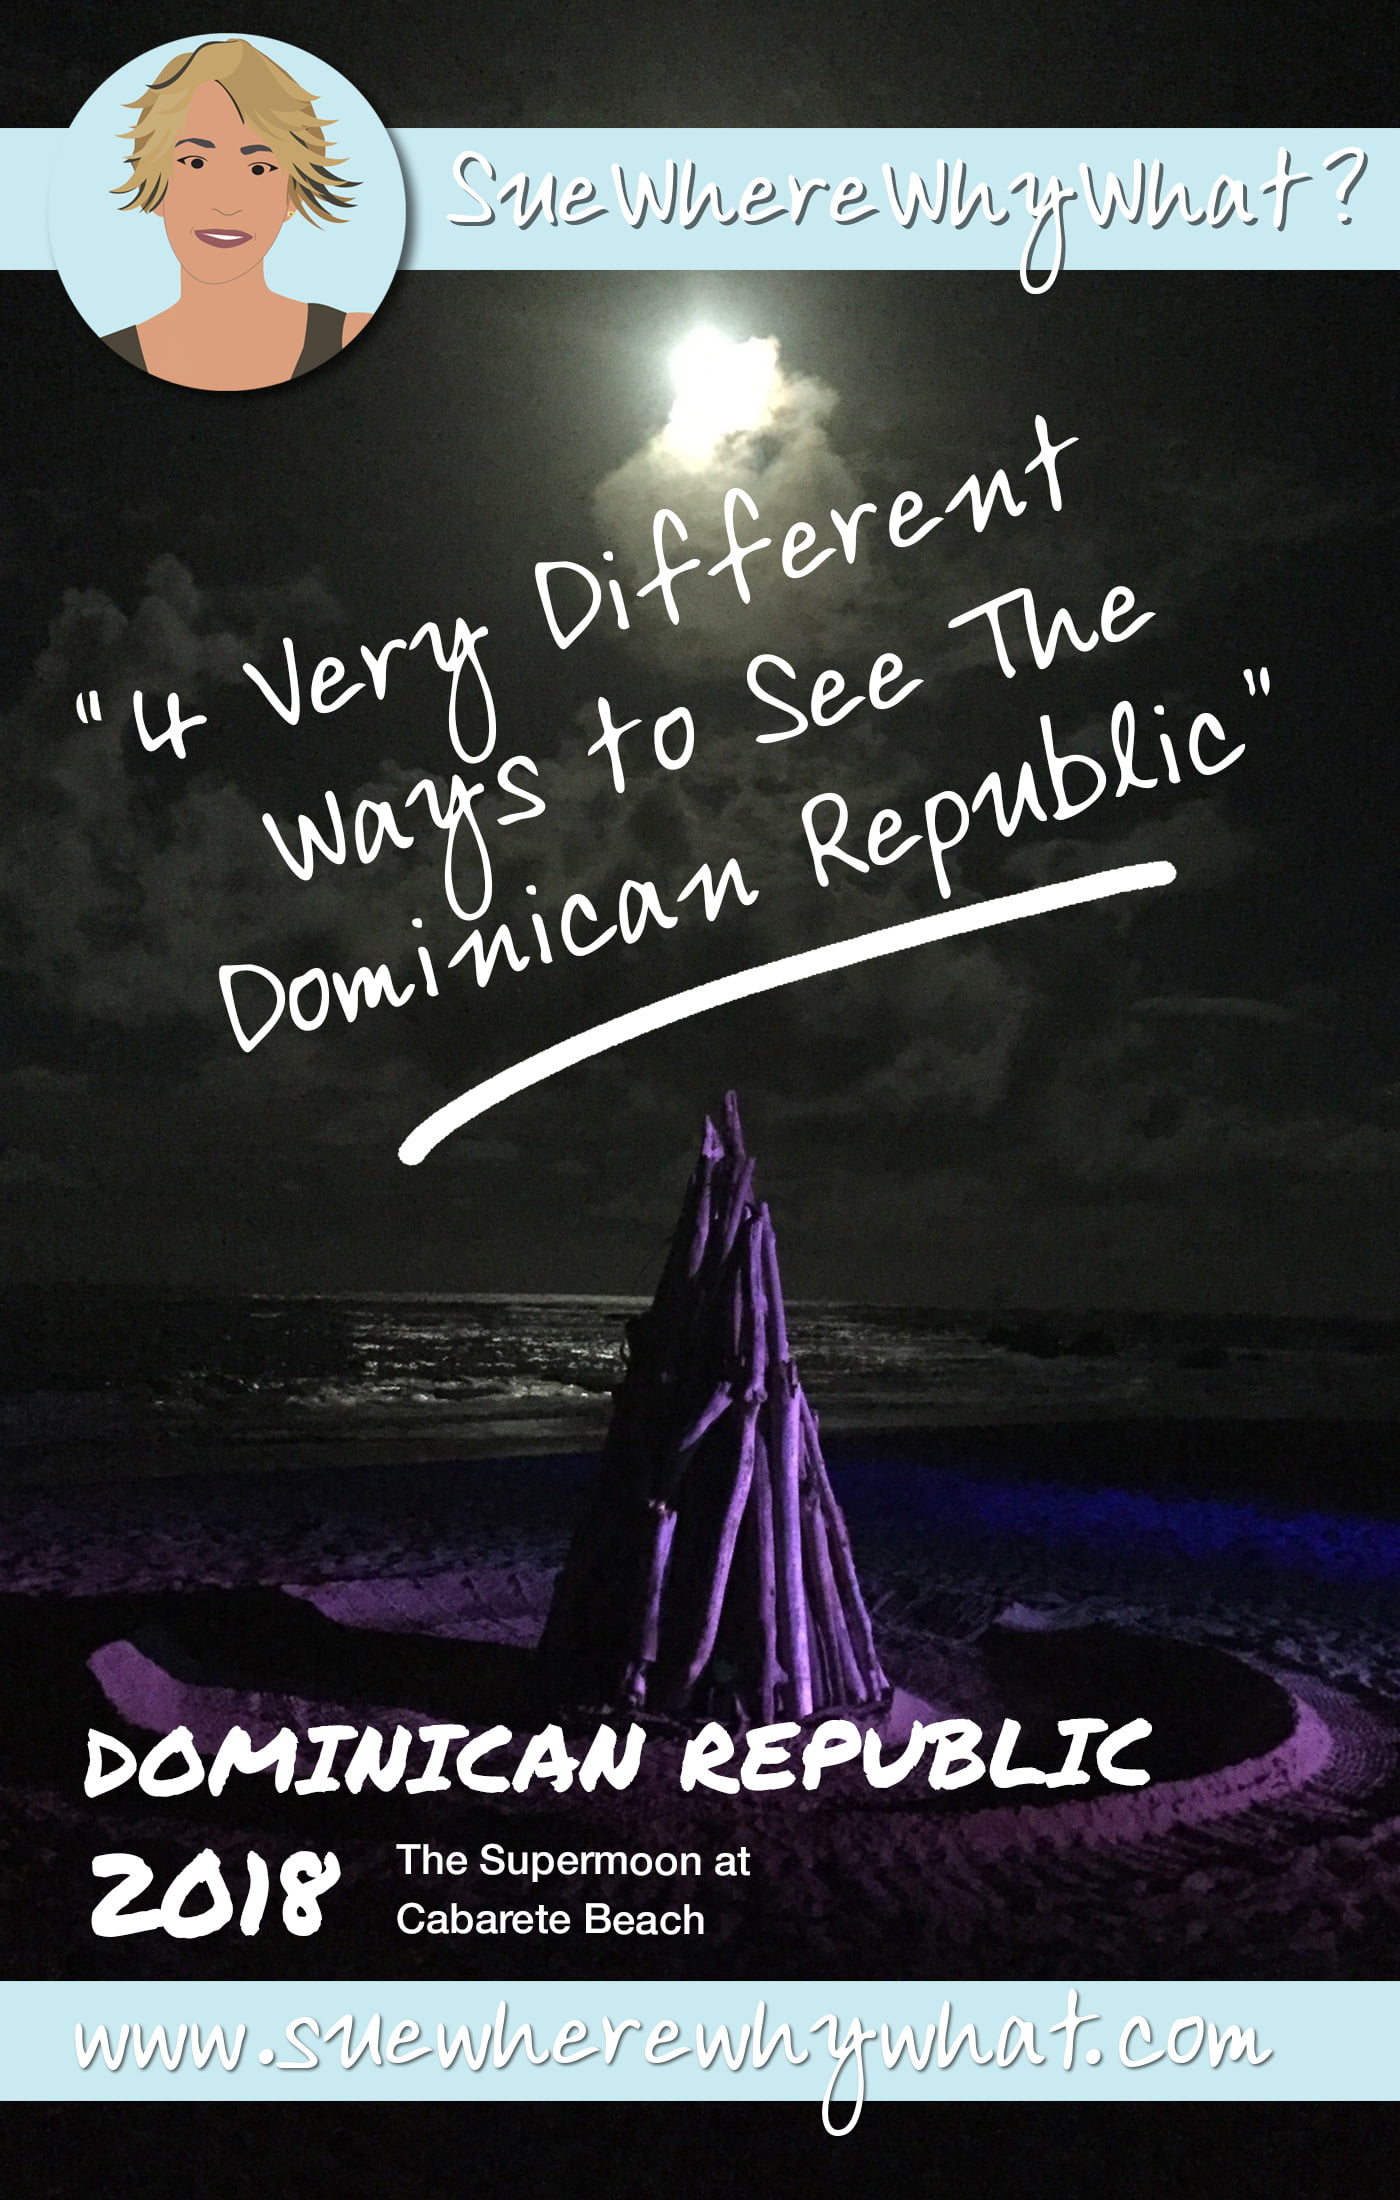 Top Things to do in the Dominican Republic. Includes different ideas for your vacation like a health & fitness resort, an independent hotel, a Spanish language course & a resort without the price tag. island.https://www.suewherewhywhat.com/activities/4-very-different-ways-to-see-the-dominican-republic